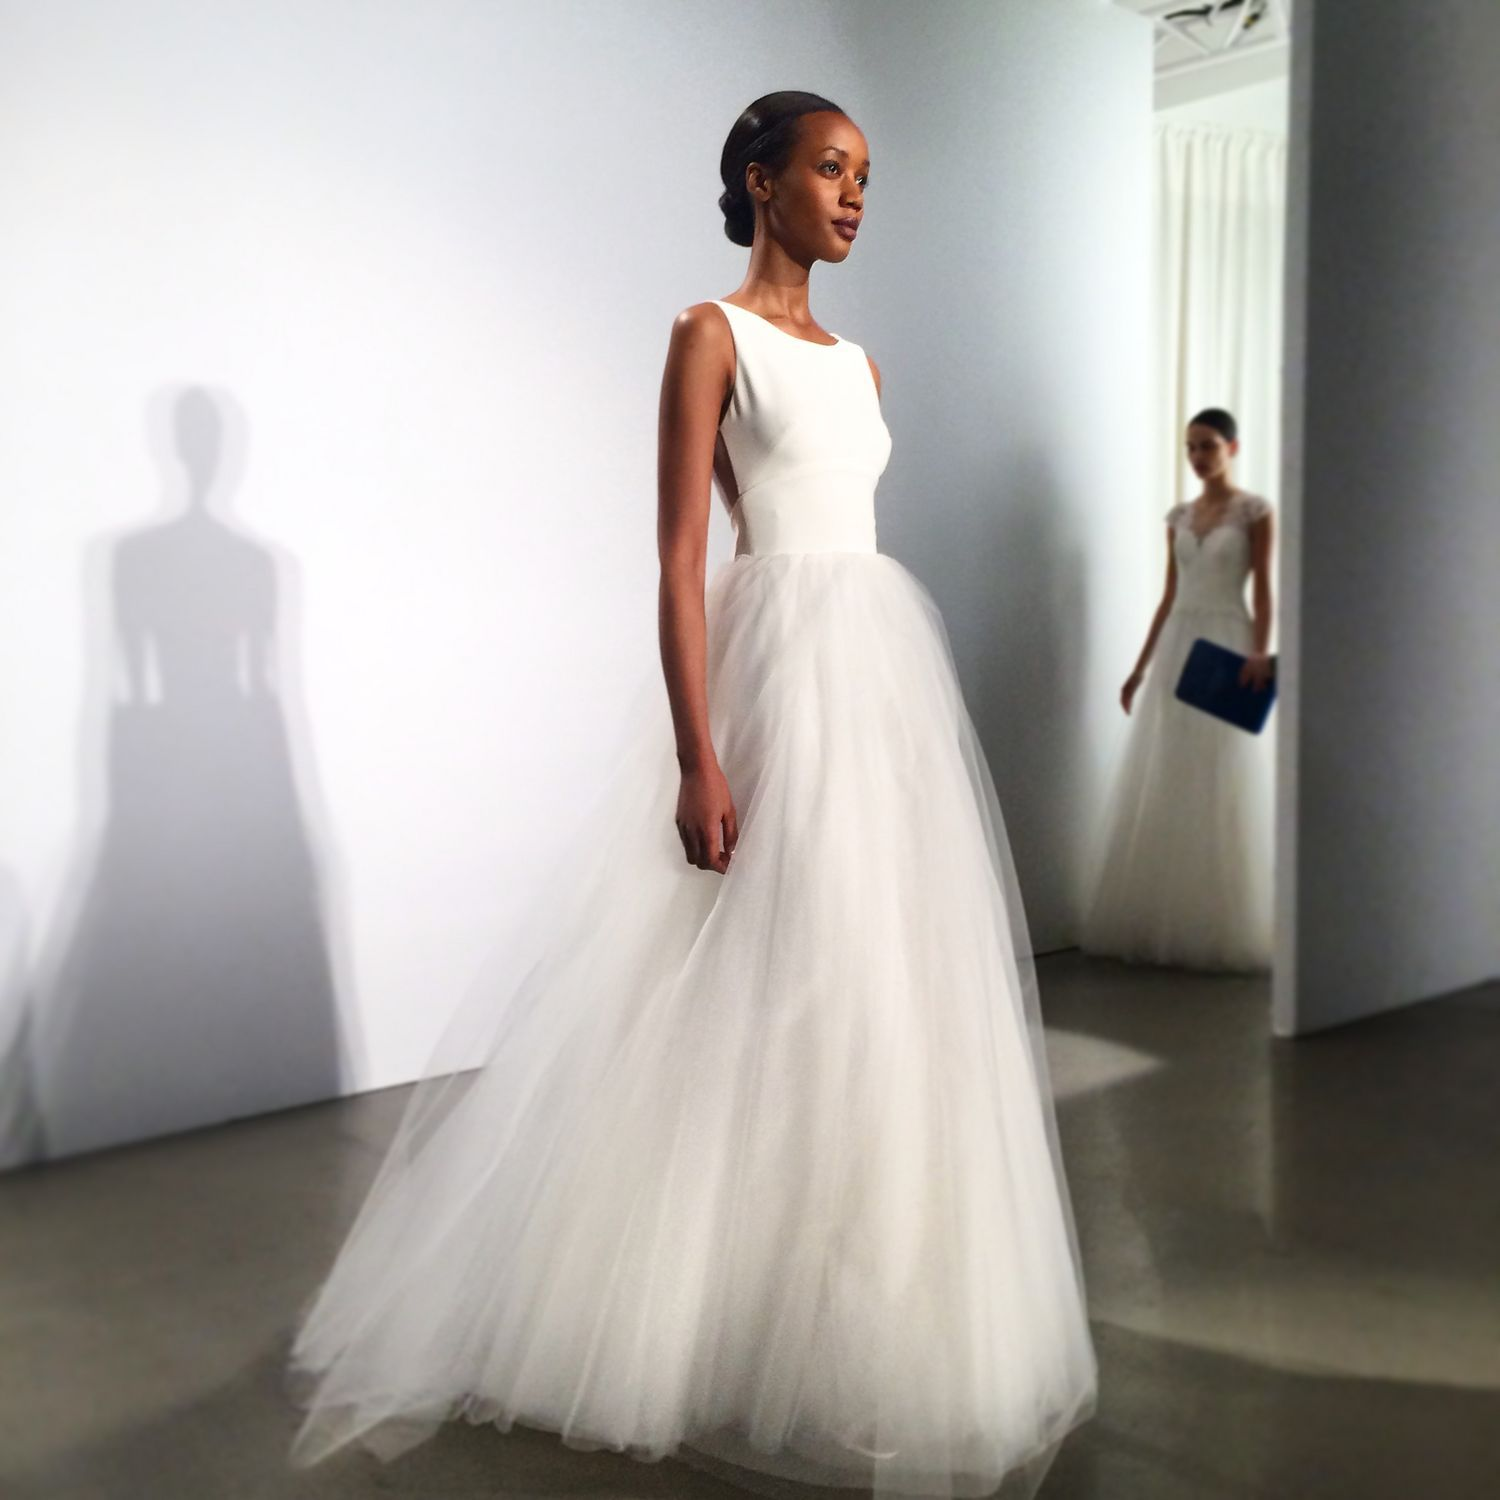 architectural wedding dresses google search wedding dresses